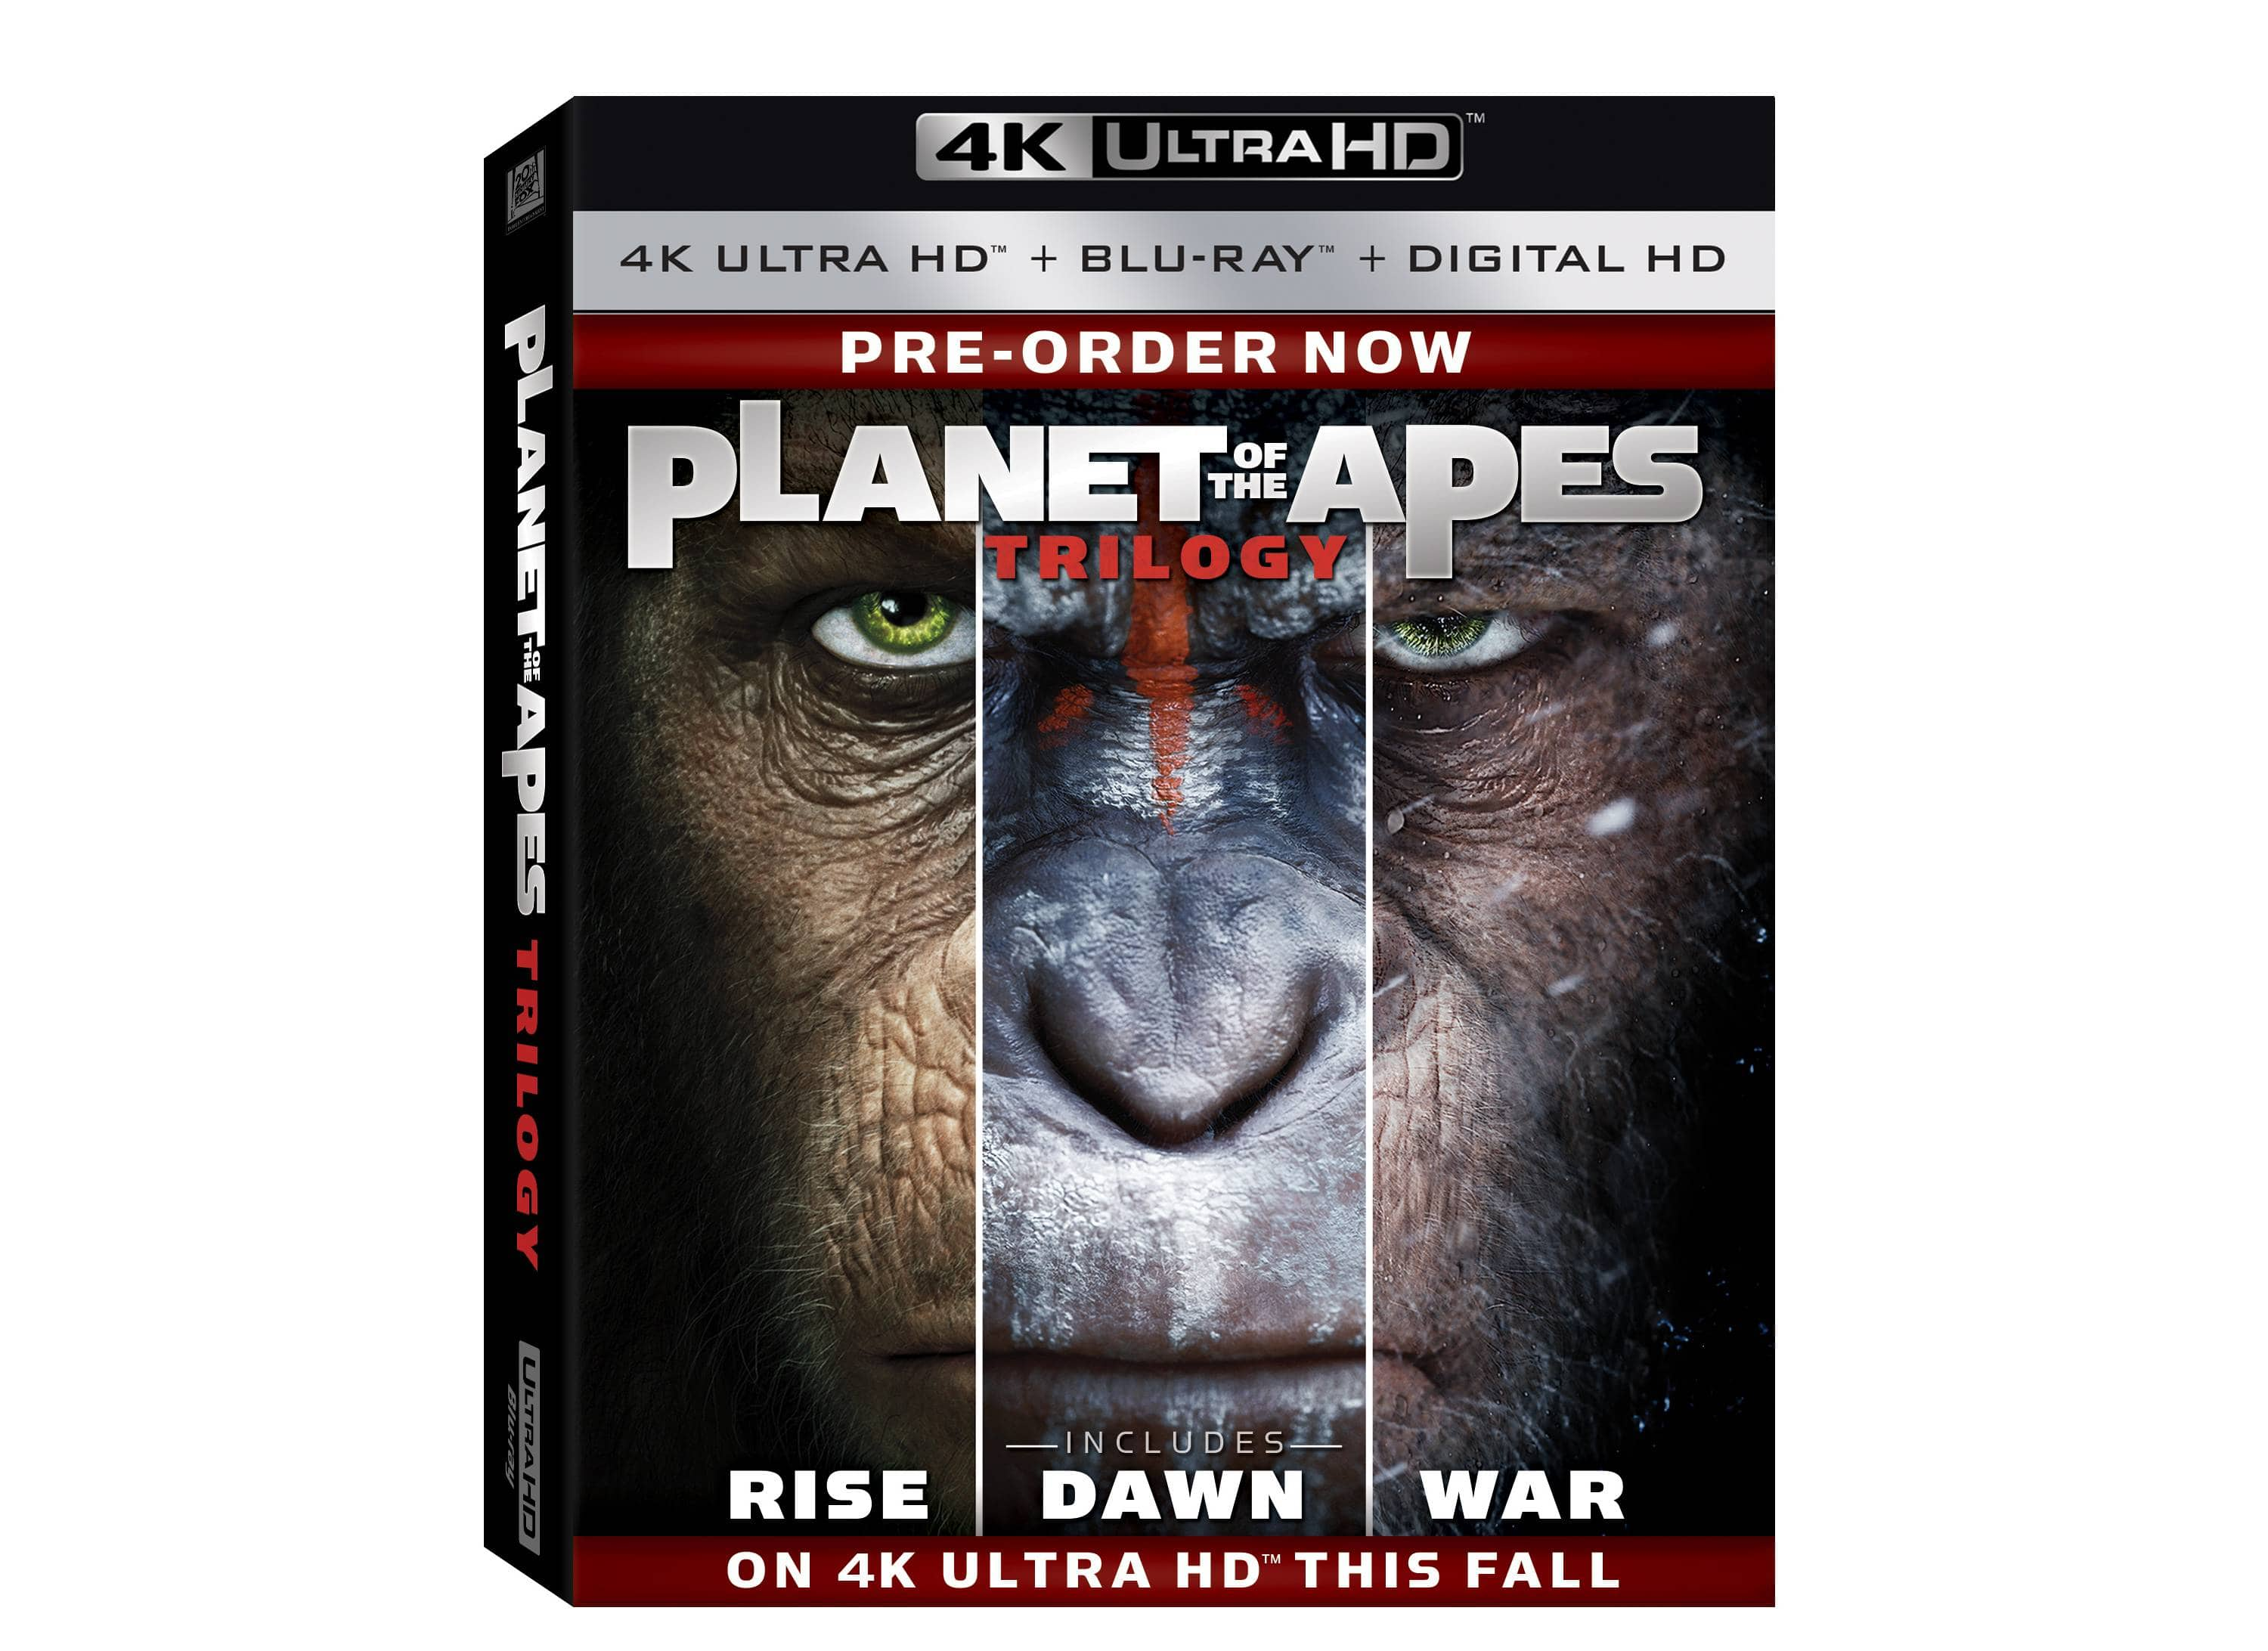 Planet Of The Apes Trilogy (4K/UHD + Blu-ray + DVD + Digital) - $49.99